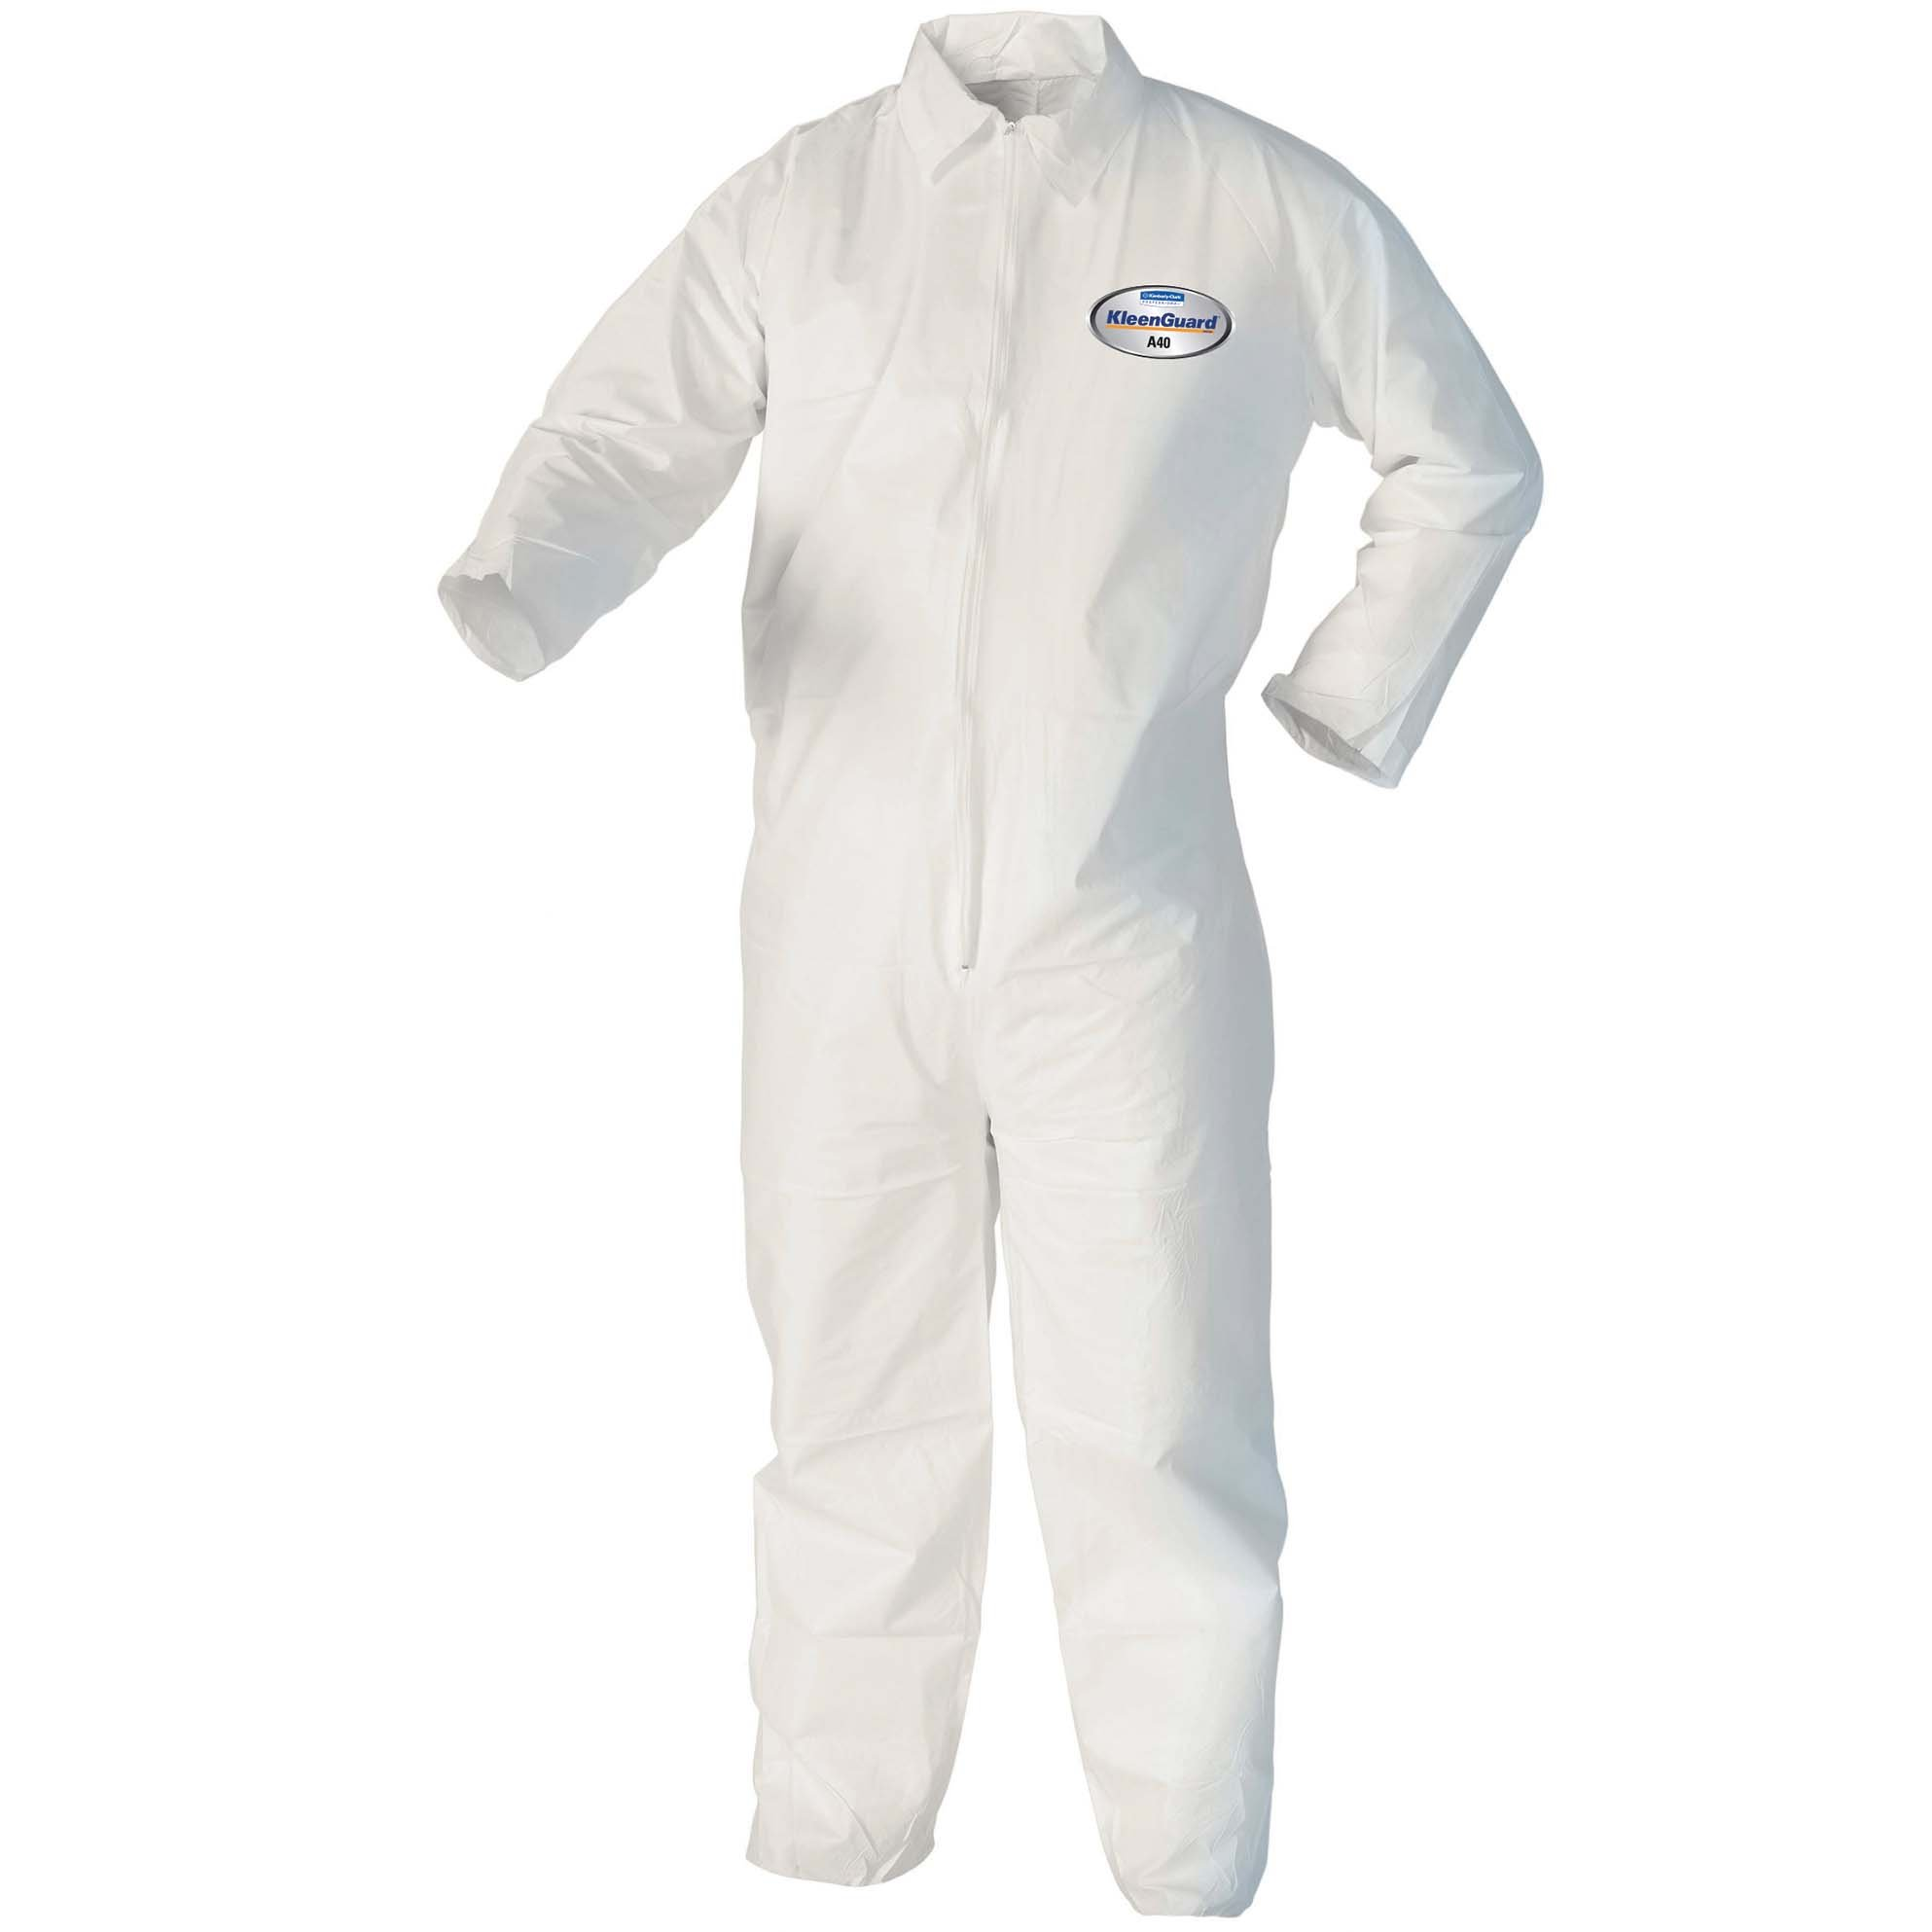 Kleenguard 37687 A40 Liquid and Particle Protection Microporous Film Coveralls, Vending Machine Ready,, 6.750'' Height, 2.750'' Width, 6.750'' Length, 2XL, White (Pack of 25)